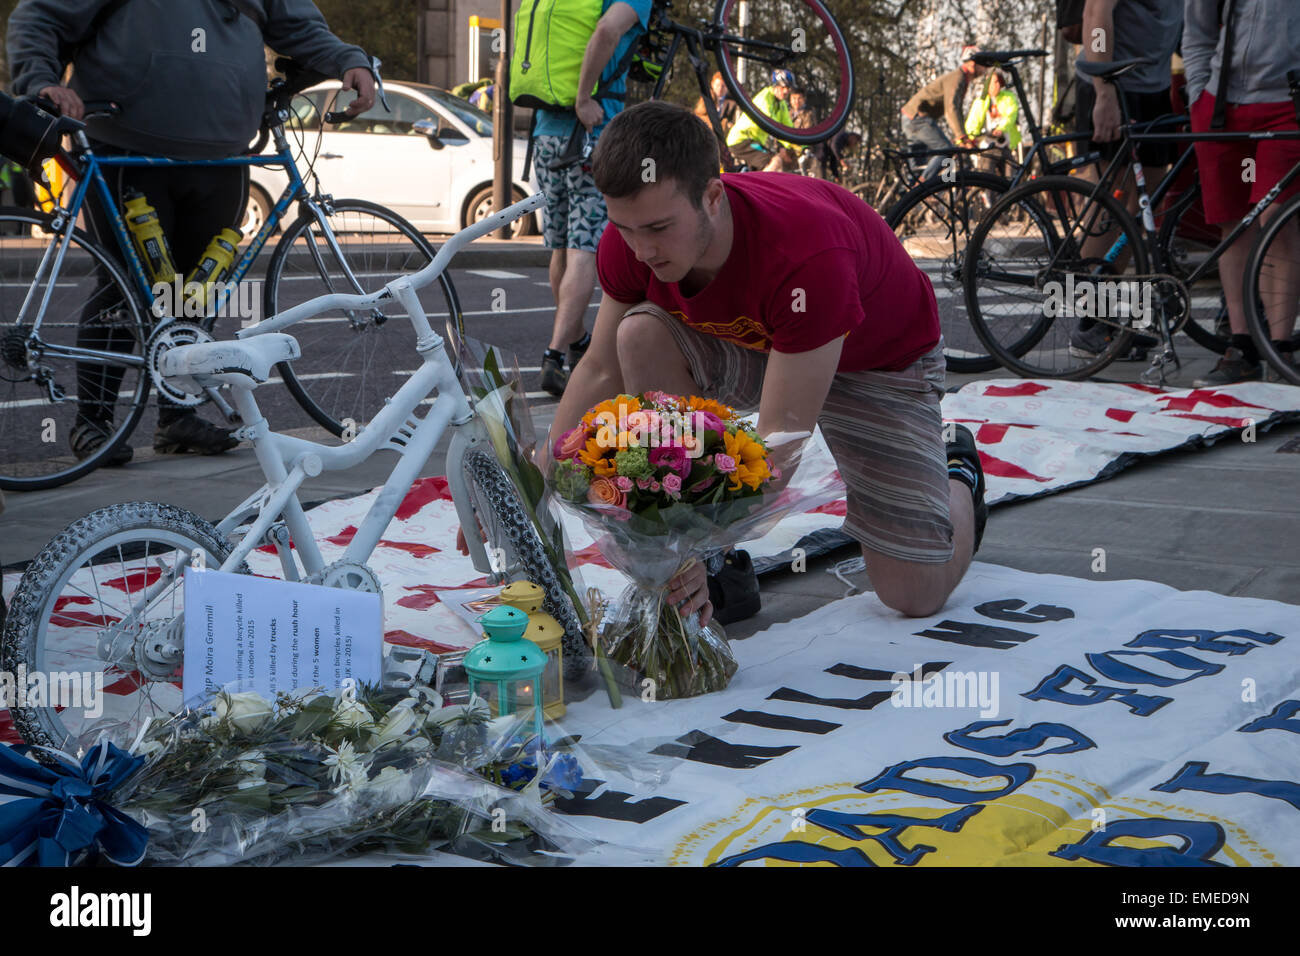 London, UK. 20th Apr, 2015. London vigil and die in for dead cyclist Moira Gemmill Credit:  Zefrog/Alamy Live News Stock Photo